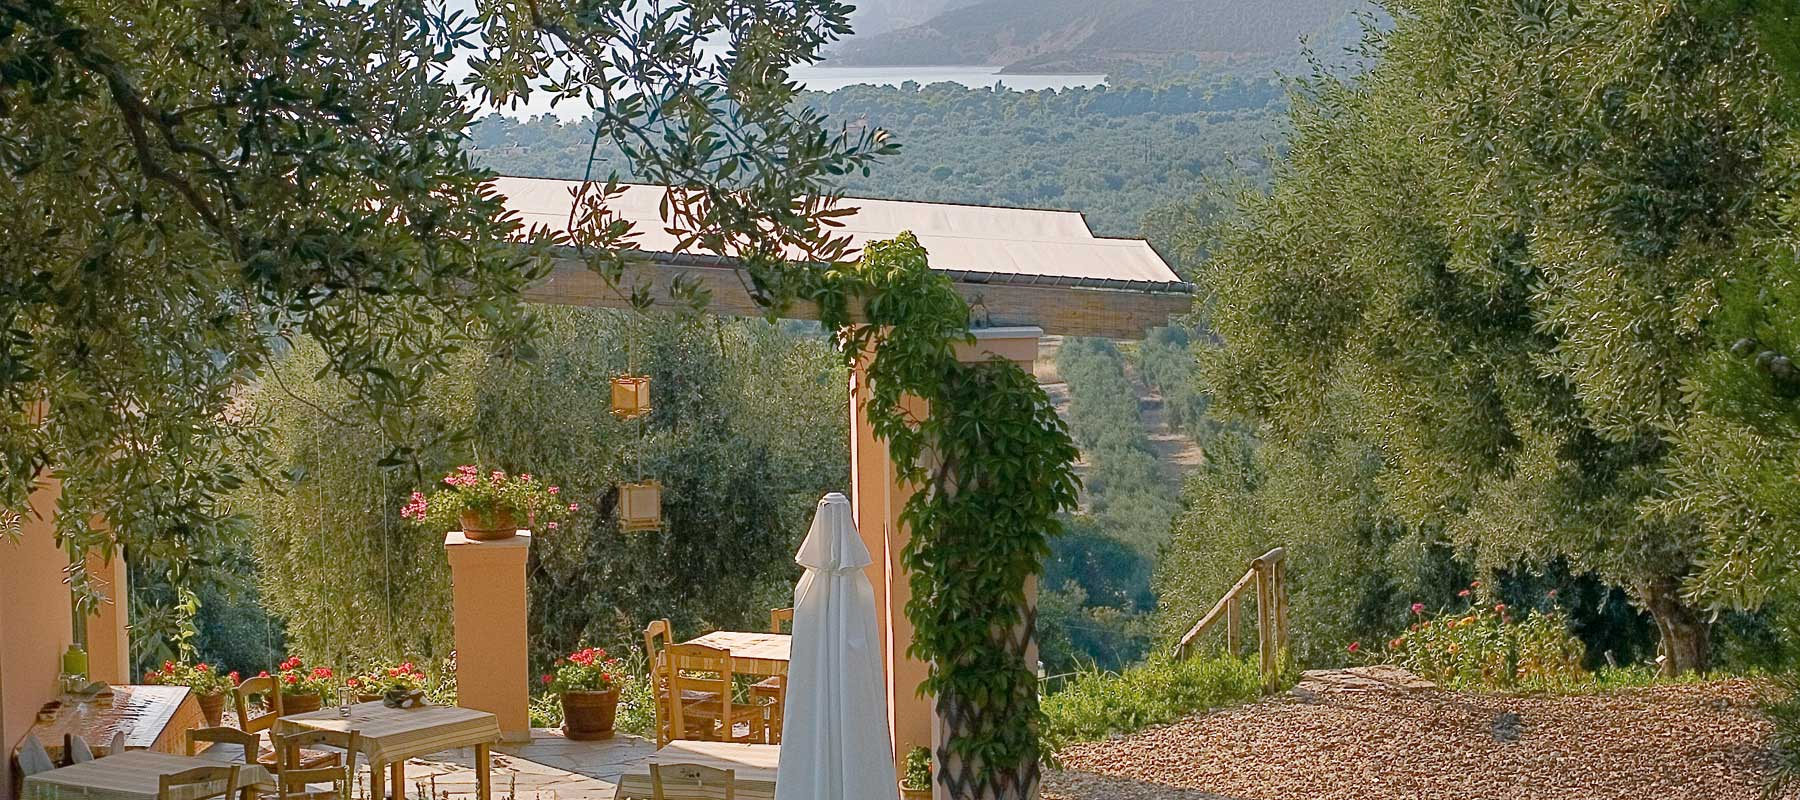 Enjoy a drink under the olives trees or in a cosy atrium